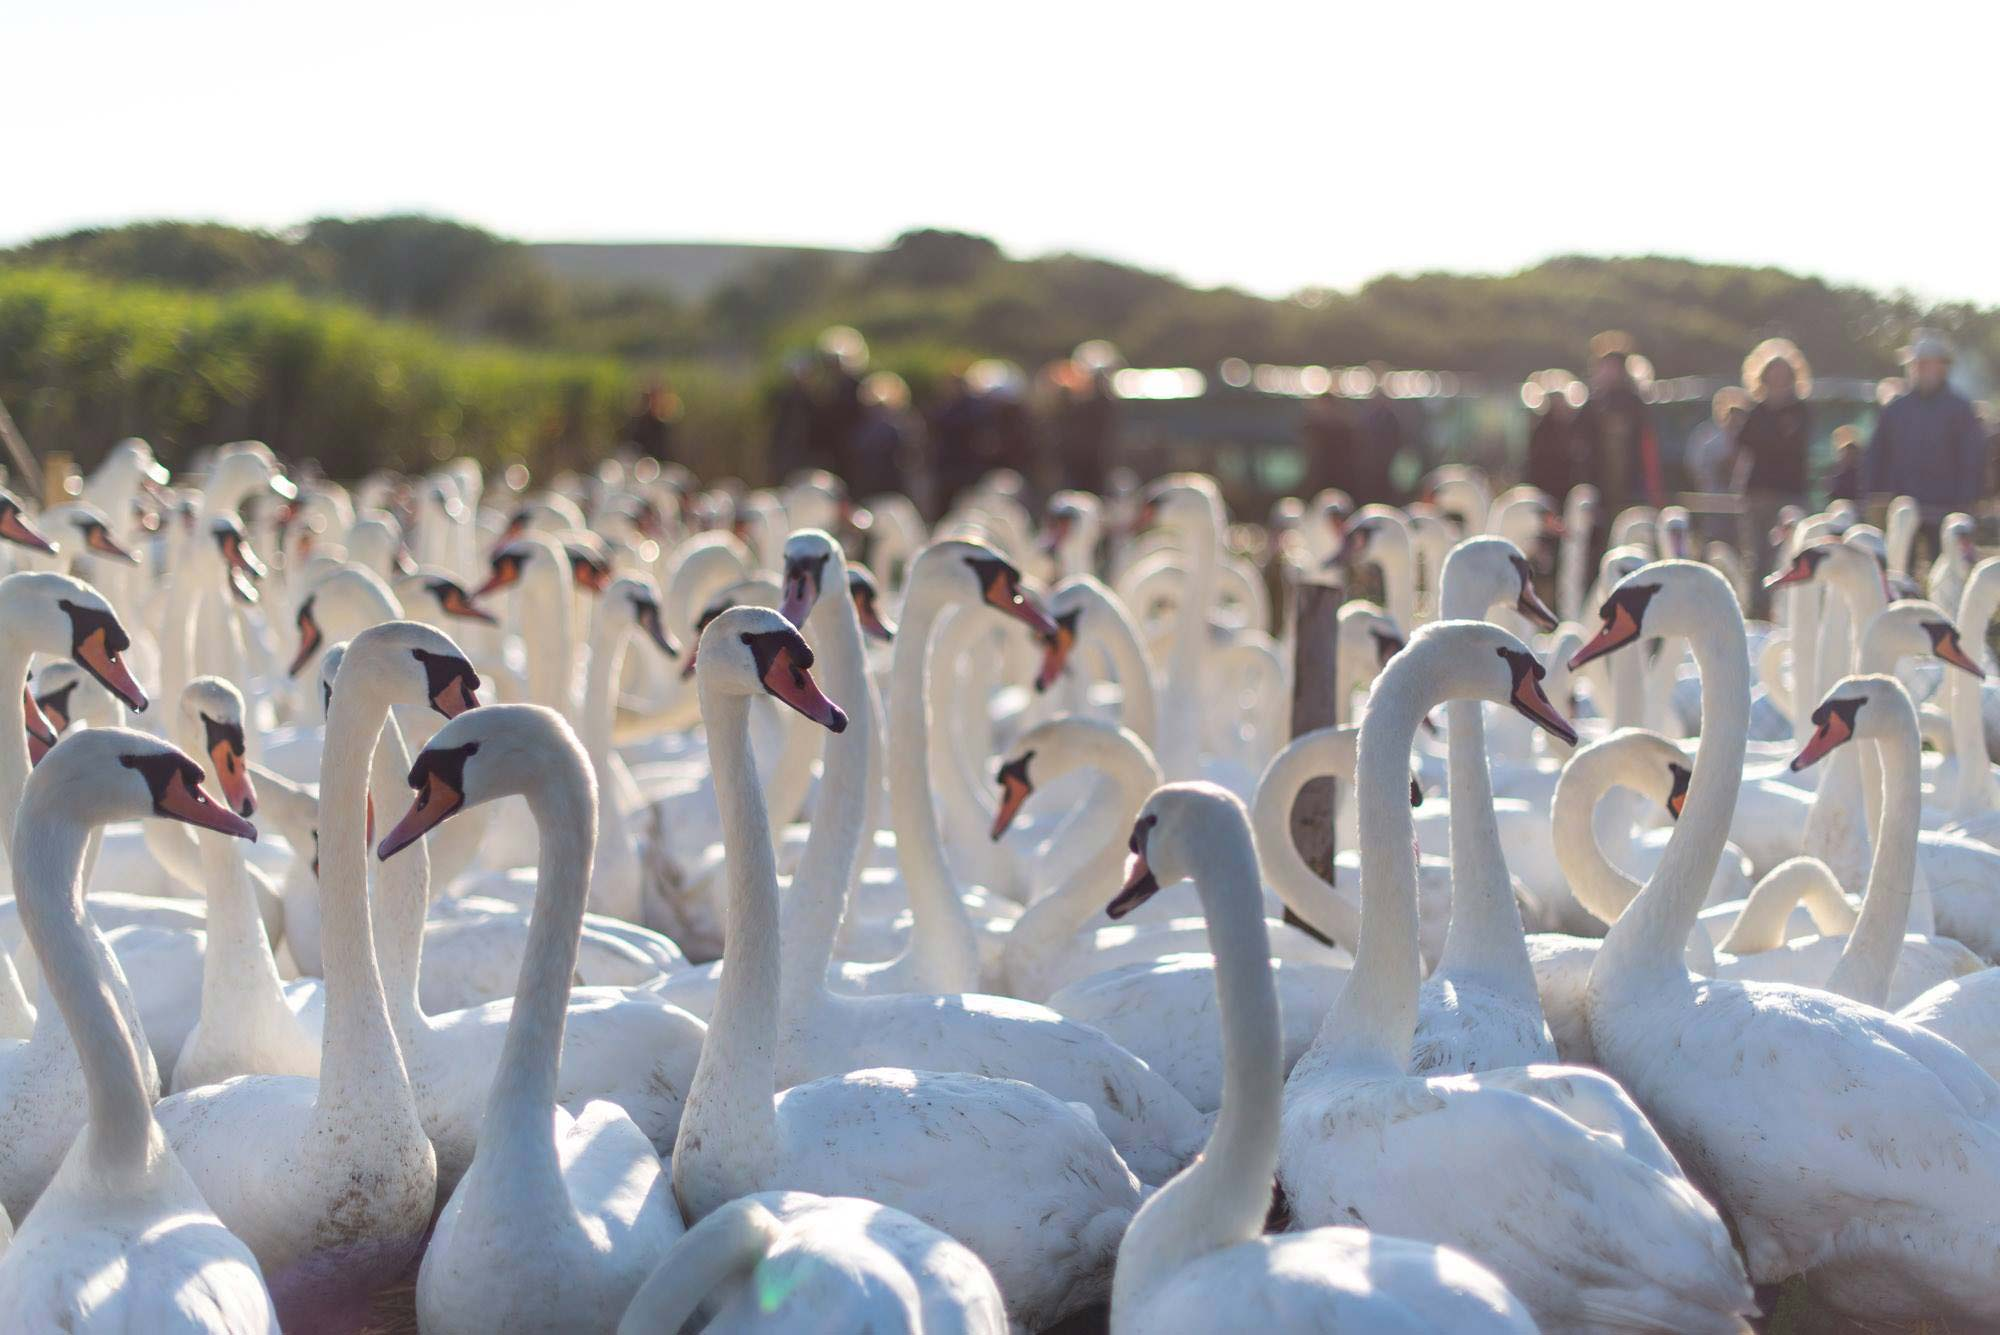 Group of swans early in the morning at Abbotsbury Swannery